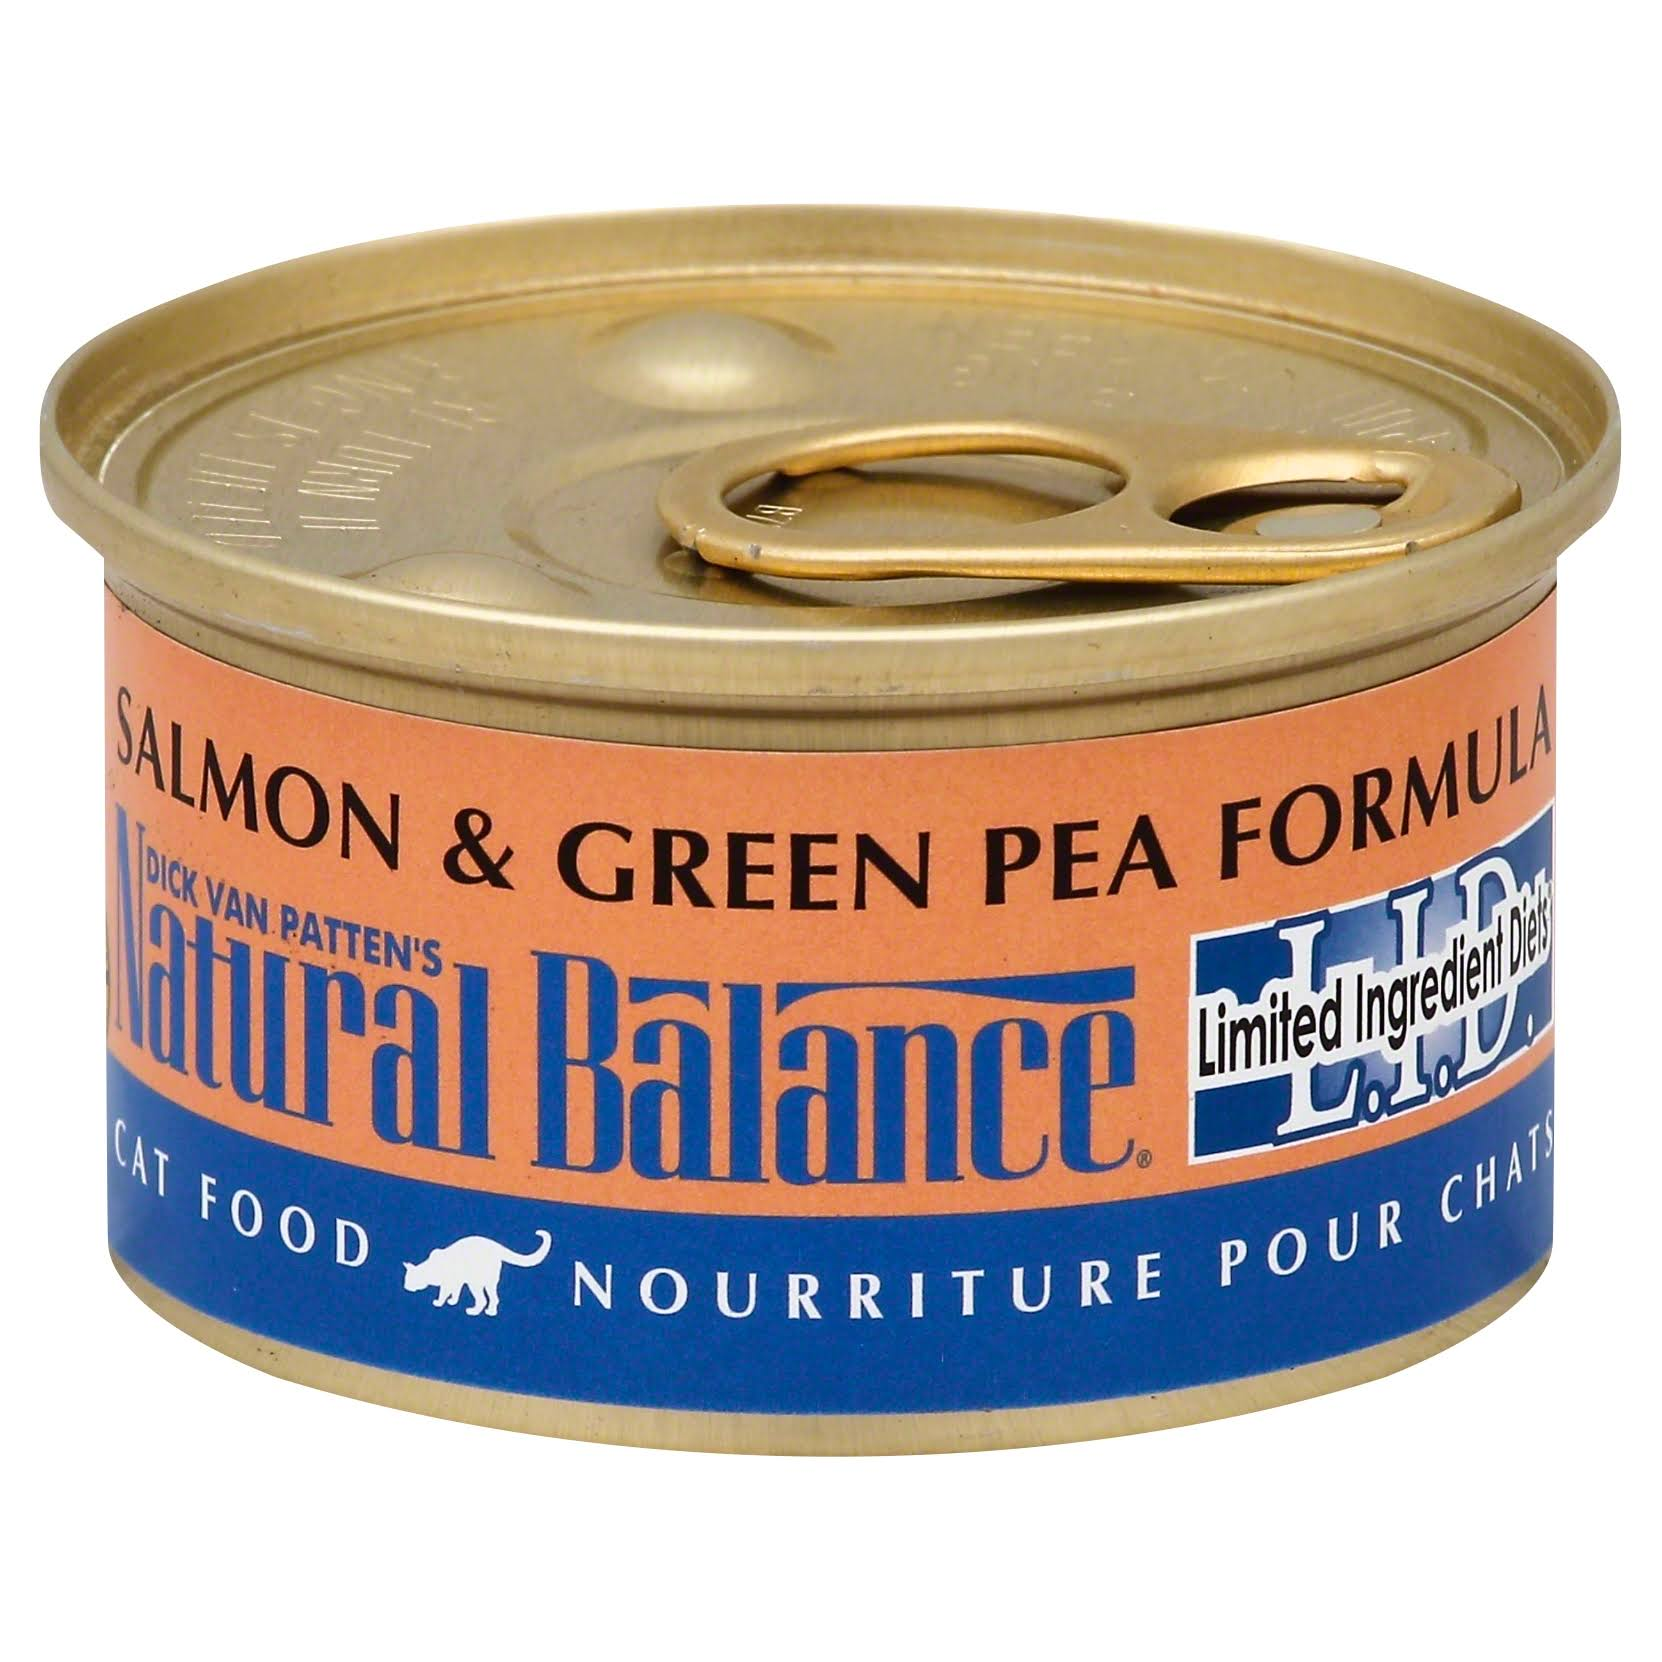 Natural Balance L.I.D. Limited Ingredient Diets Cat Food - Salmon and Green Pea Formula, 3oz